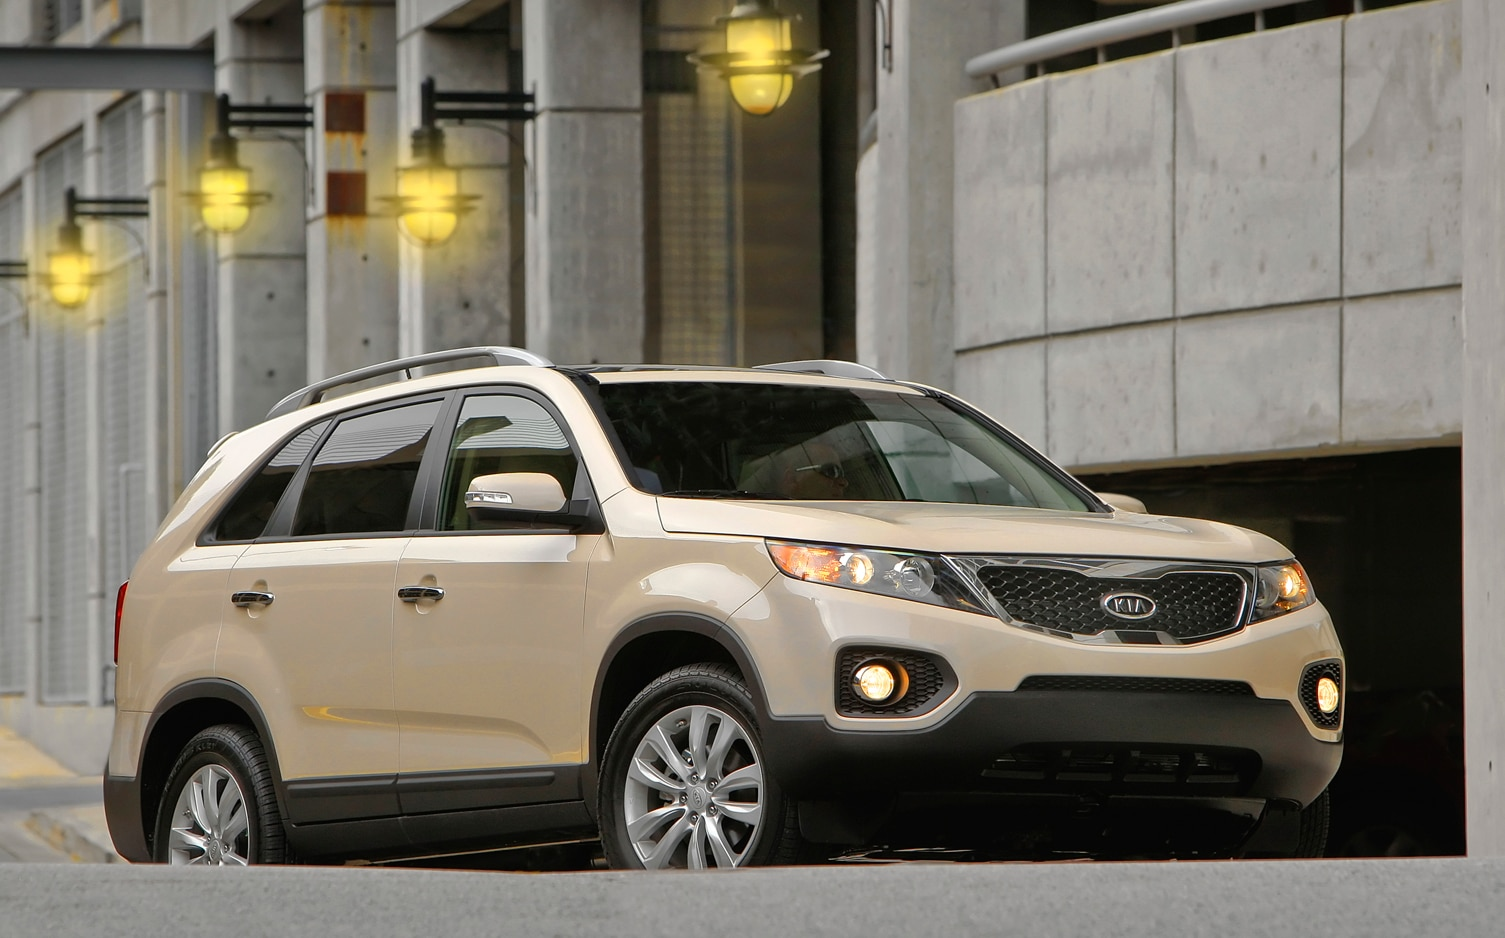 2012 Kia Sorento Front Right Side View 3